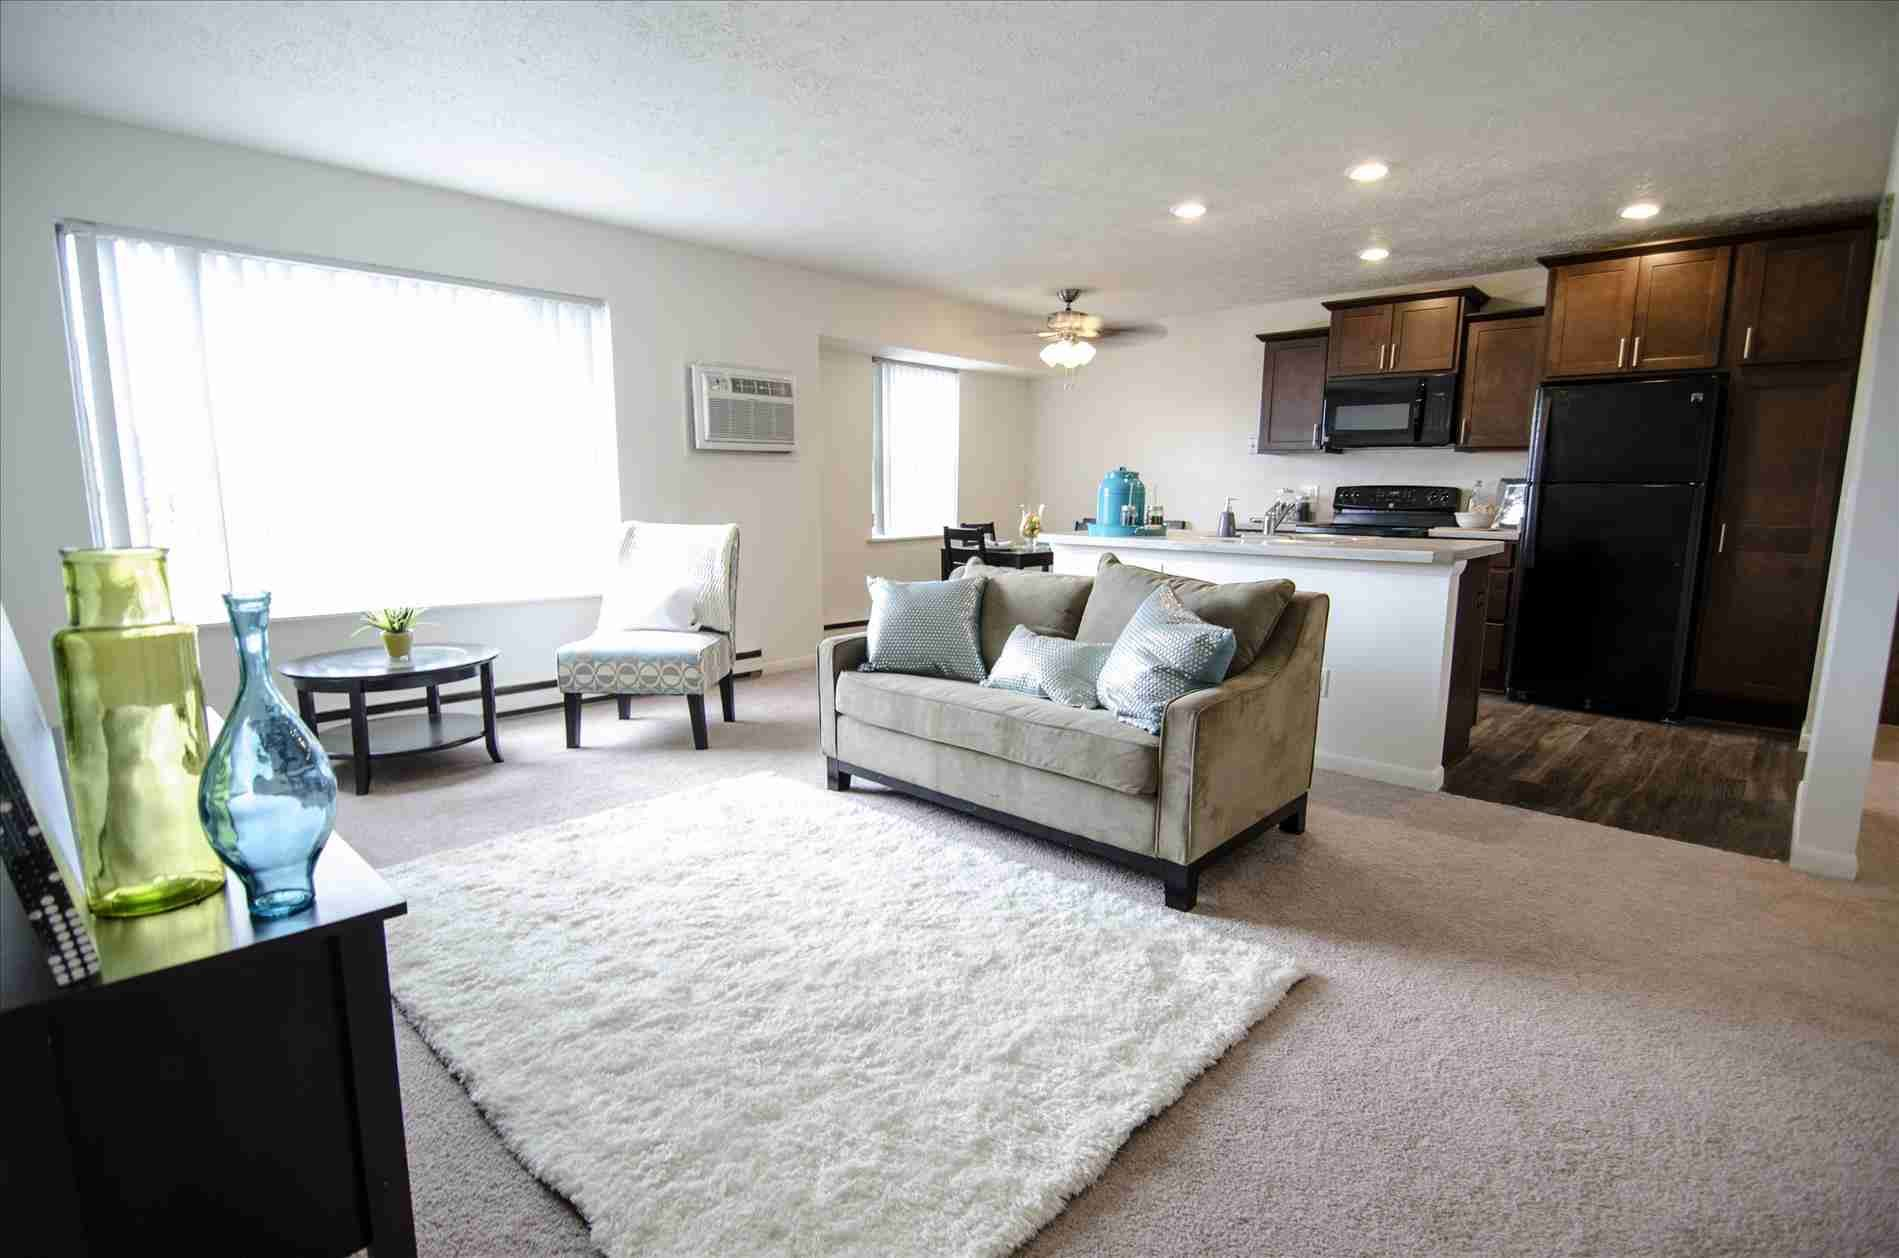 2 bedroom house with loft  New post Trending bedroom apartments lansing miVisitentermp